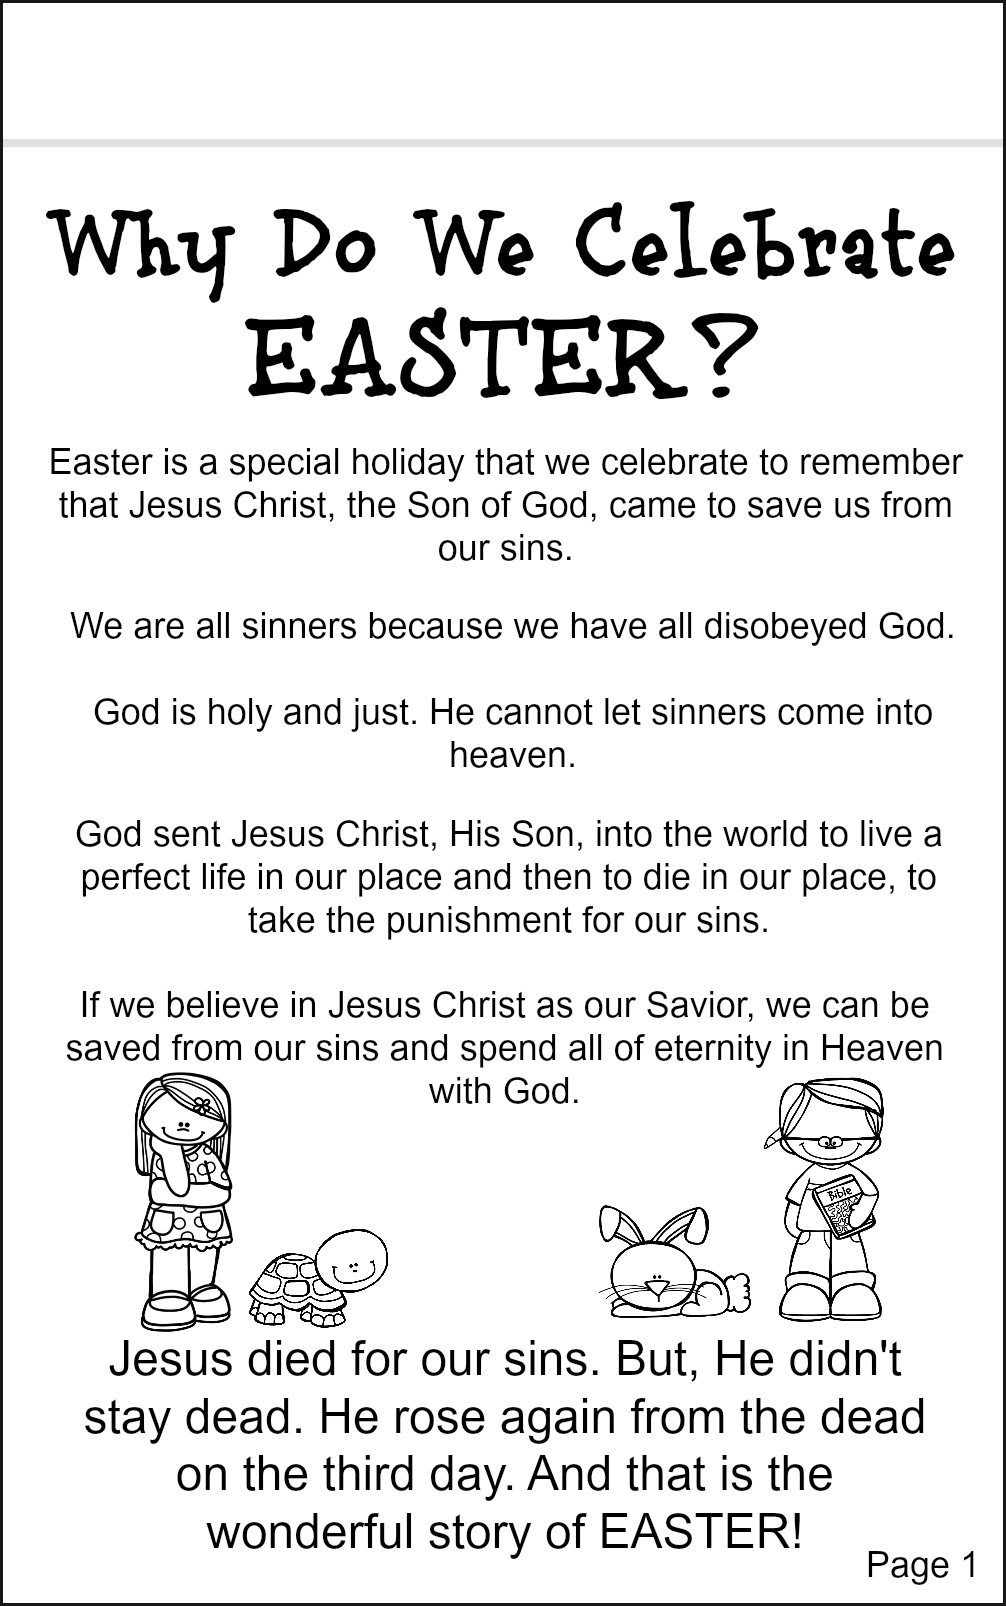 Easter Theme Border Paper as well Good Friday Coloring Pages And Pintables For Kids in addition Russian Easter Eggs Pictures I besides Easter Coloring Page Music furthermore Easter Coloring Pages Painting Eggs. on christian easter egg coloring pages